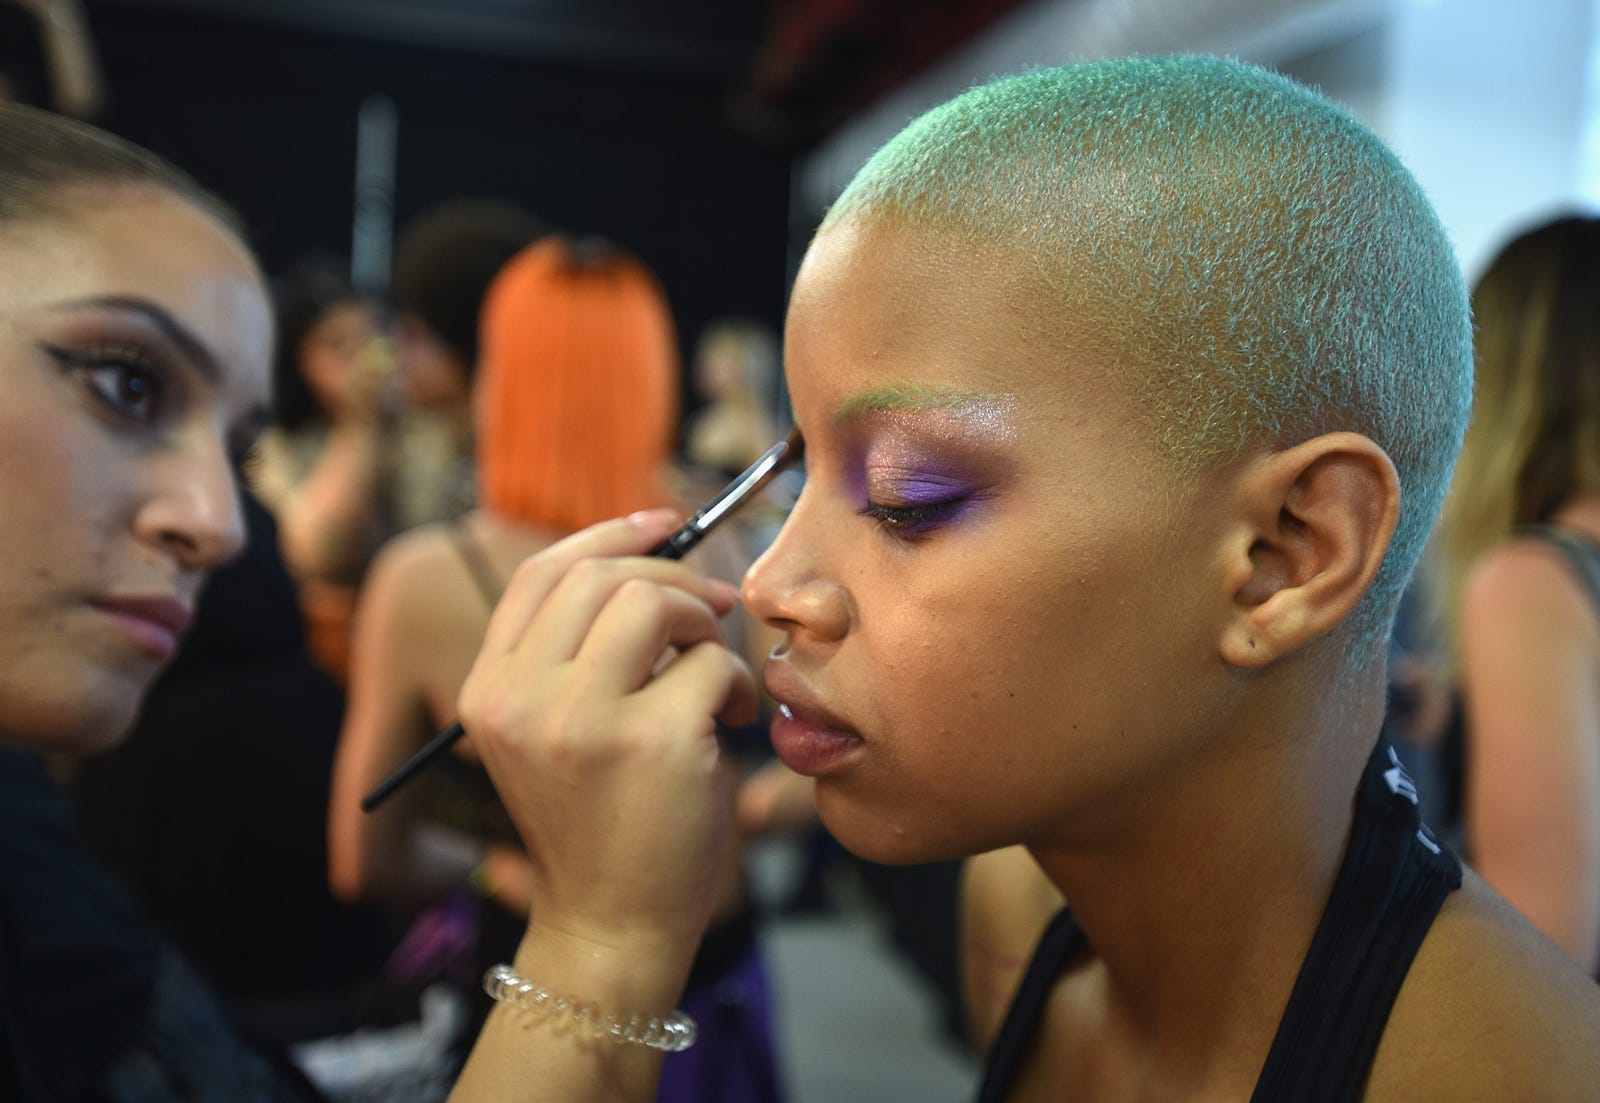 Slick Woods prepares backstage for the Savage X Fenty Fall/Winter 2018 fashion show during NYFW at the Brooklyn Navy Yard on September 12, 2018 in Brooklyn, NY.